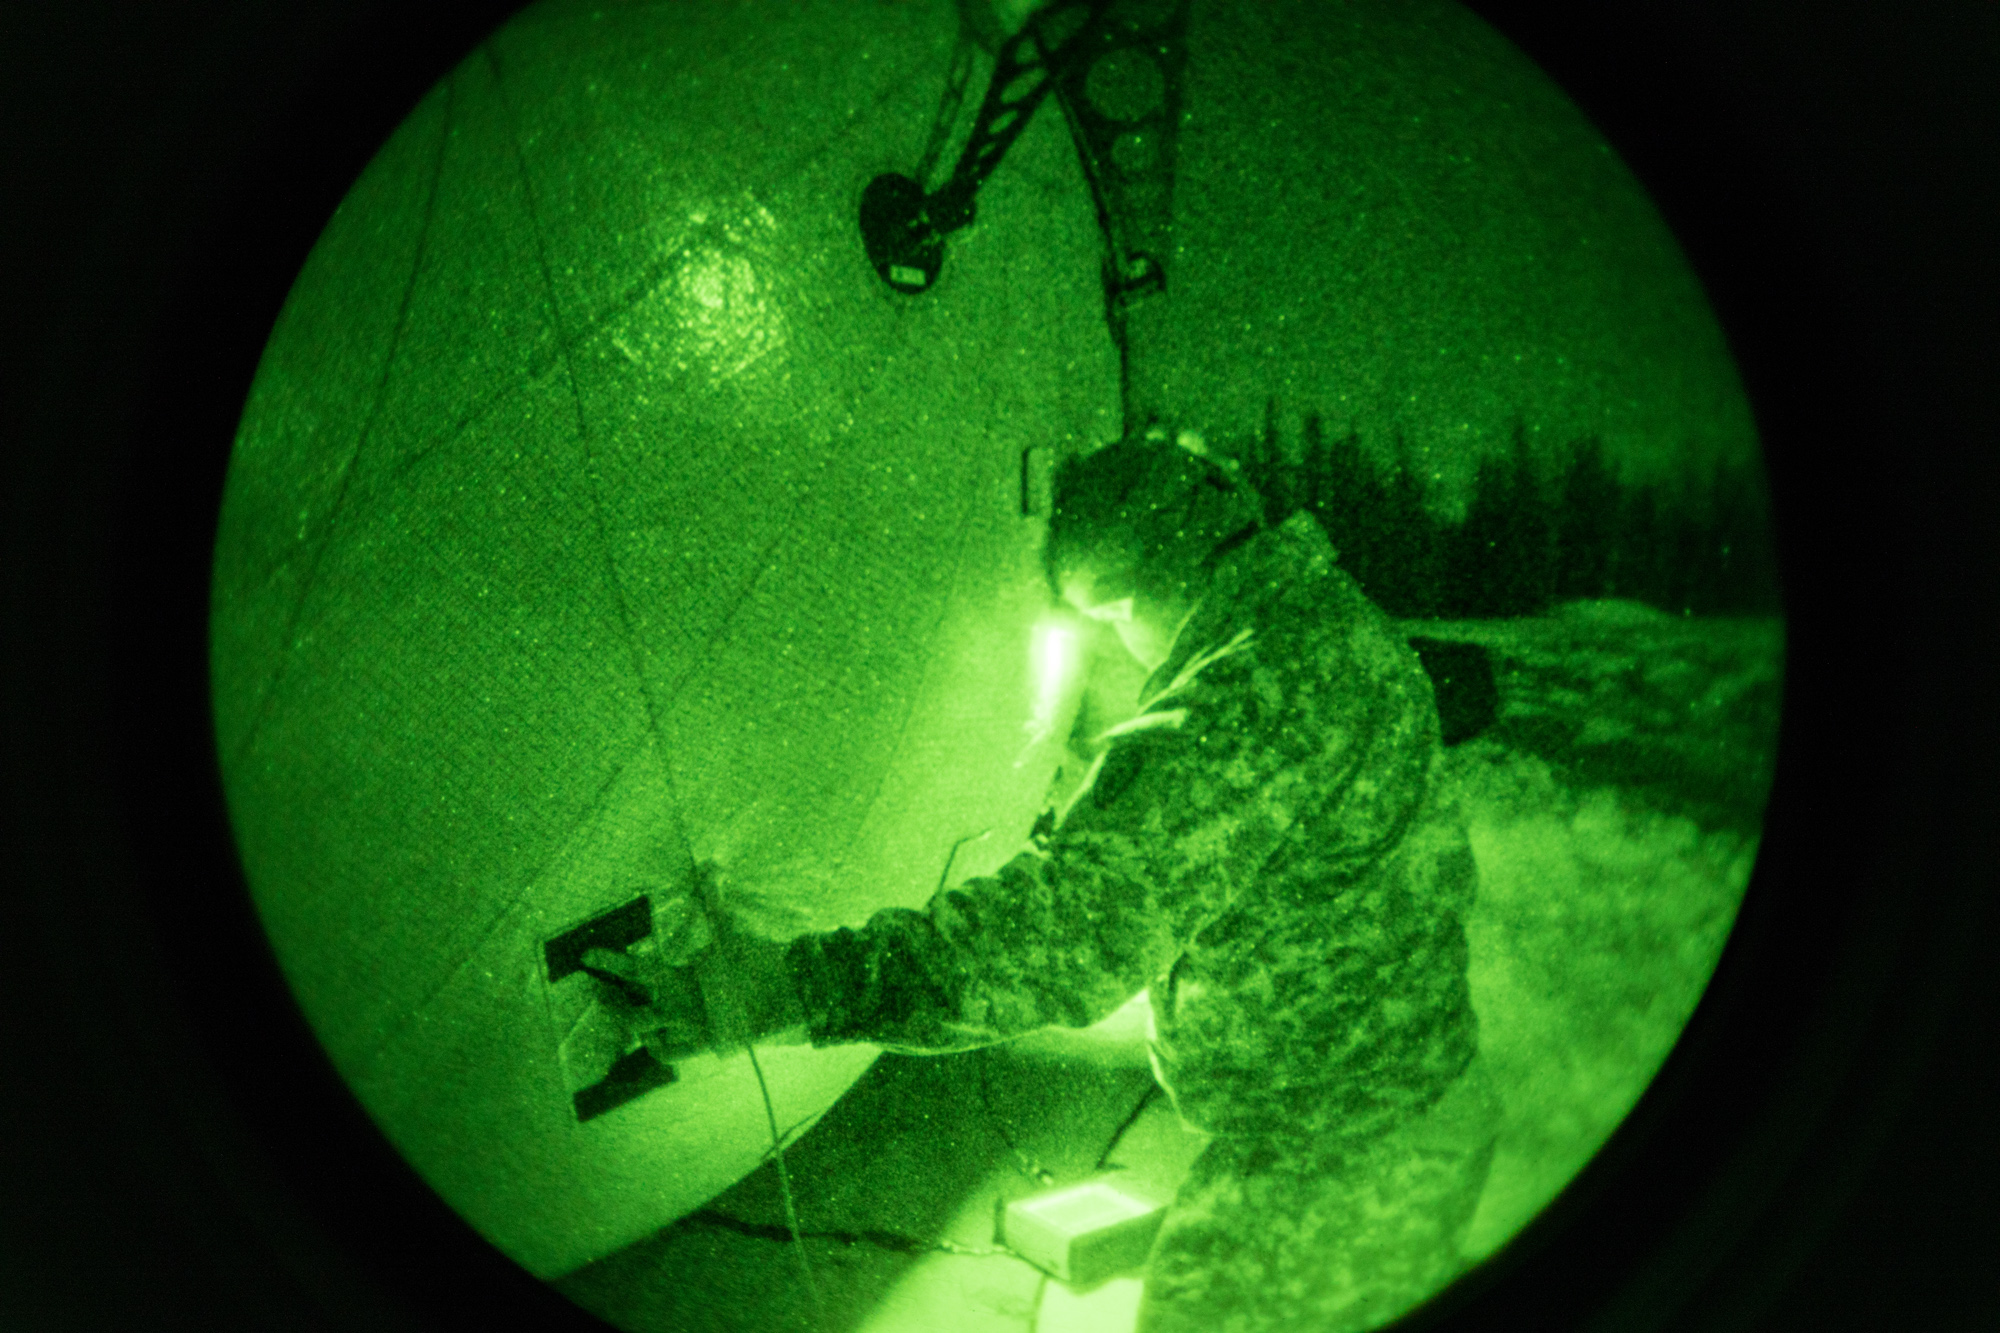 4th Infantry BCT (Airborne) Soldiers work with the T2C2 SATCOM terminal at night at Joint Base Elmendorf-Richardson, in March. The inflatable terminal offers connectivity in remote locations at half the weight of current systems. (Photo by Staff Sgt. Pedro Garcia Bibian, 55th Signal Company (Combat Camera))